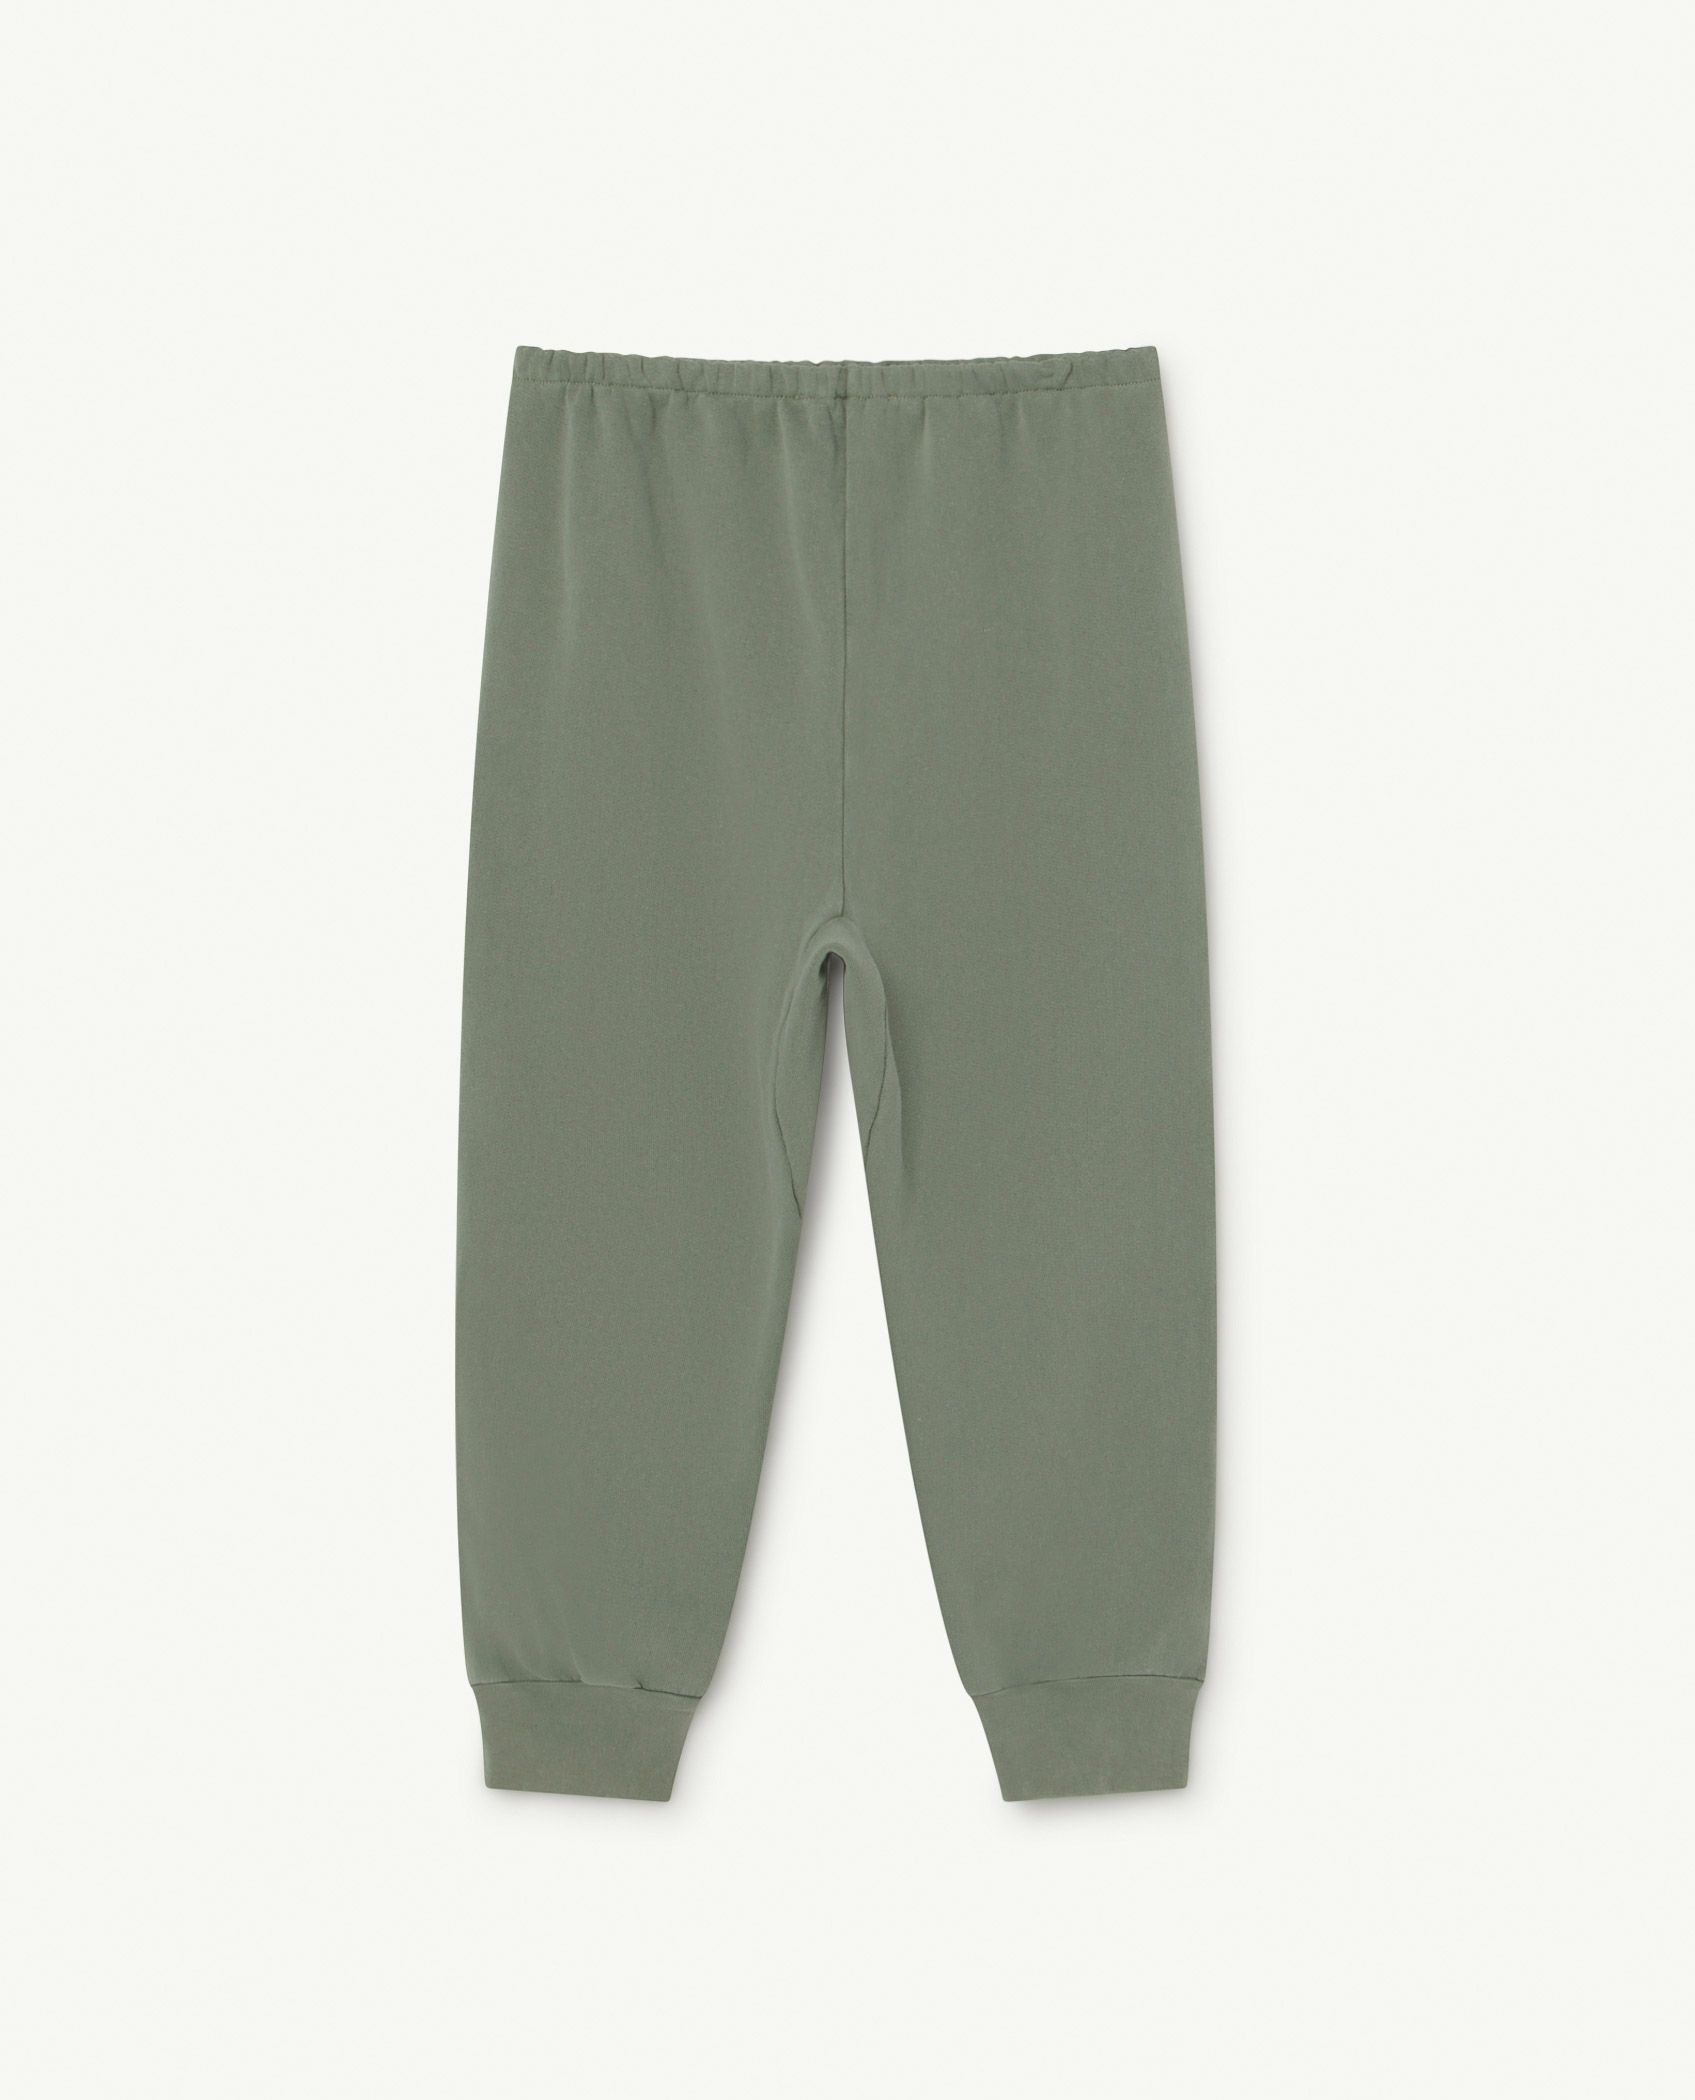 Soft Green Logo Panther Trousers img-2